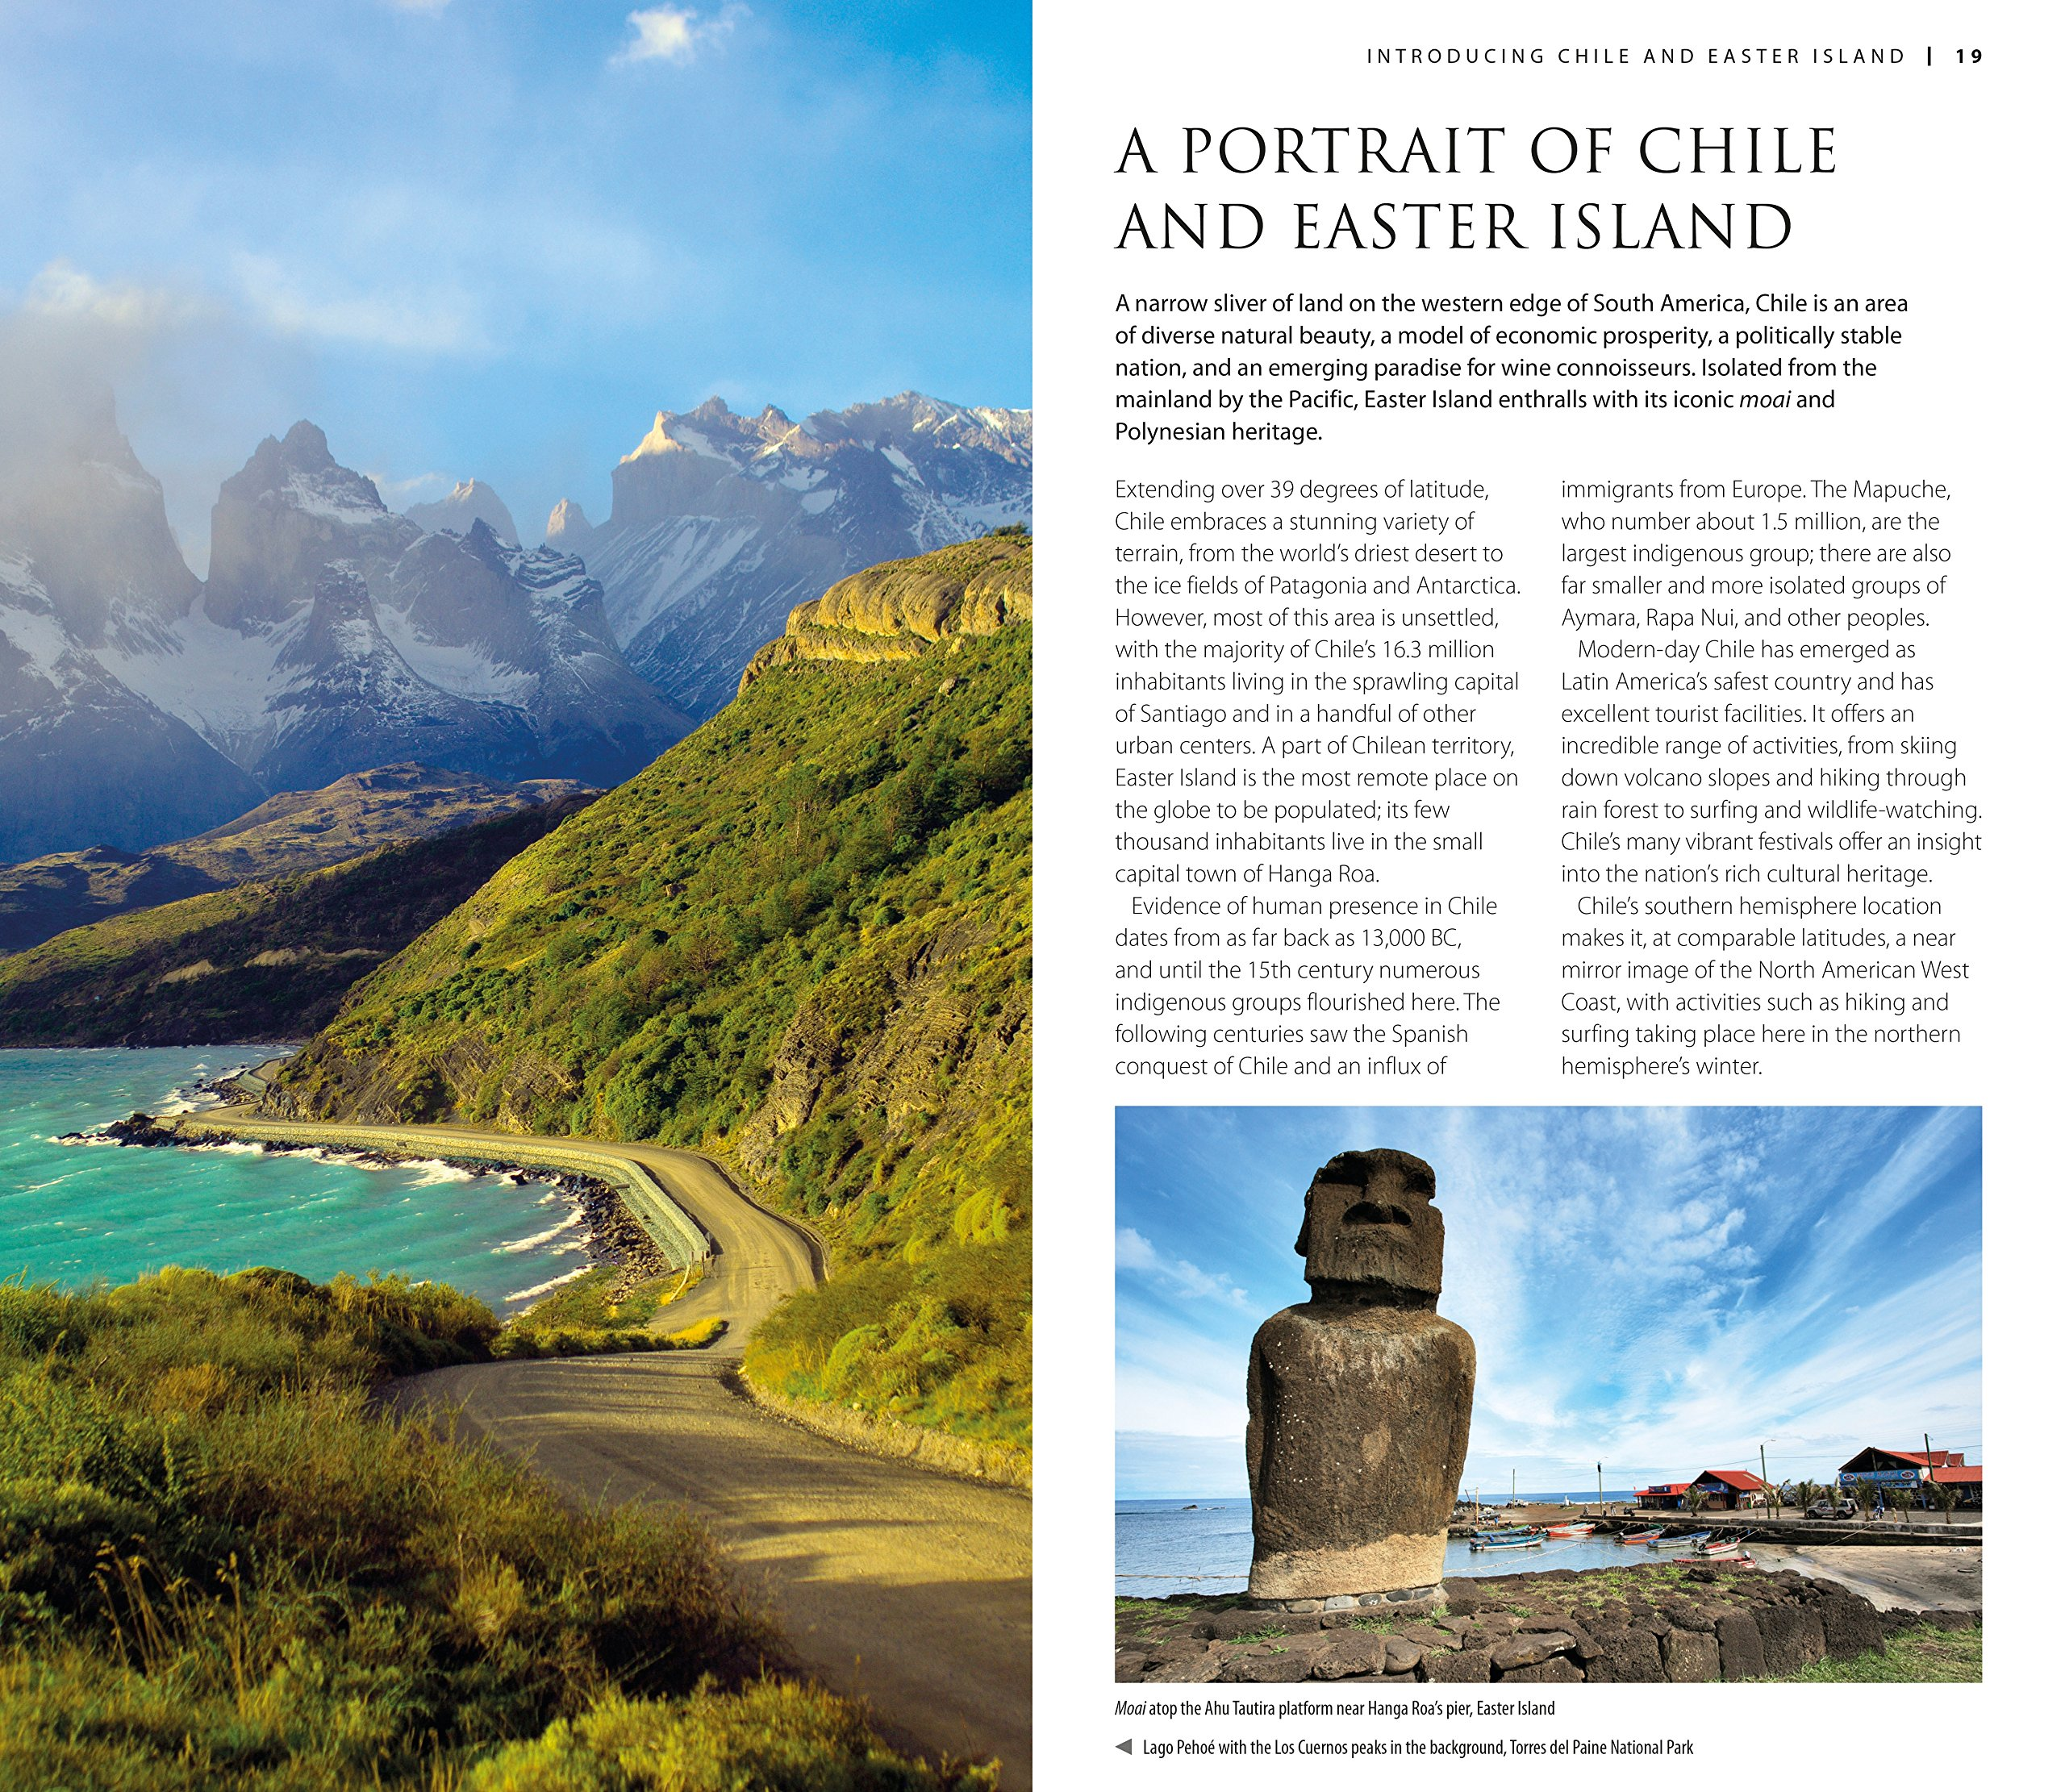 Easter Island Beaches: DK Eyewitness Travel Guide: Chile & Easter Island Complete